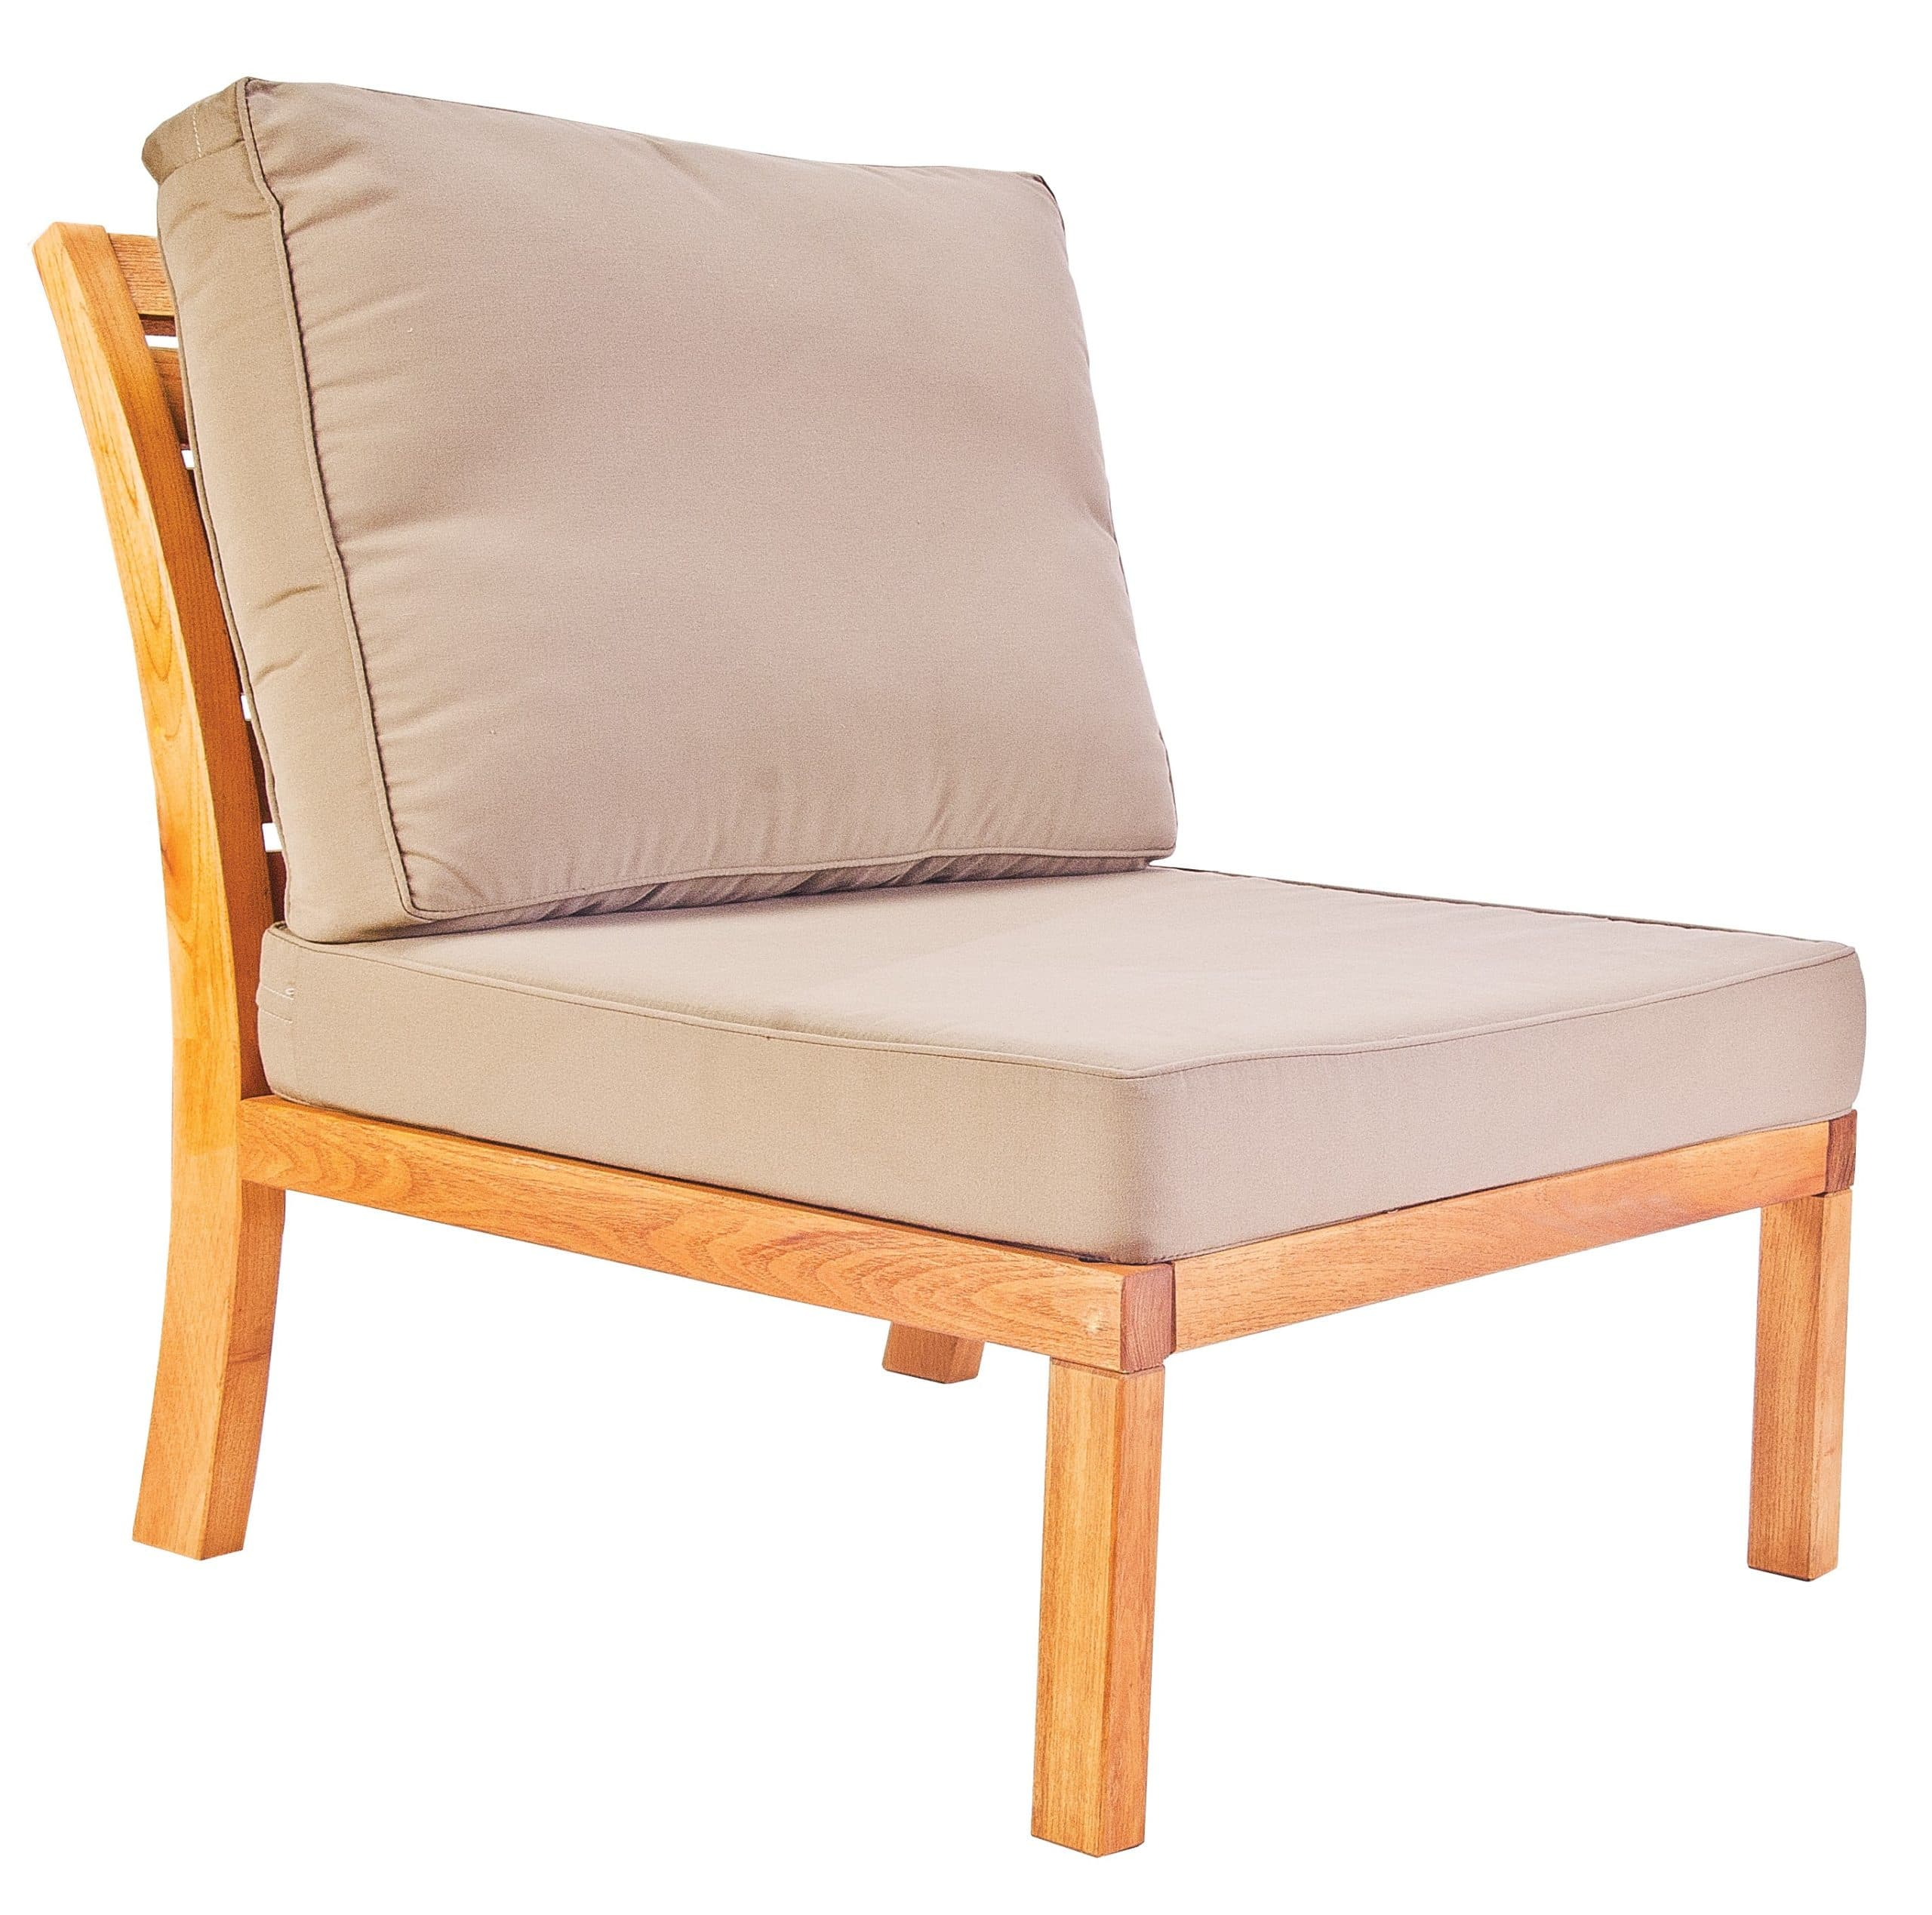 <p>Outdoor Furniture Leisure Collection Vista Chair.</p> <p> </p> <p>Comfortable Patio Lounge Set Vista Chair.</p> <p> </p> <p>Modern Leisure indoor or outdoor Hotel Coffee Lounge Set includes Armchairs, Chair, Corner Settee, Footstool and Table. Suits a variety of locations and settings including outdoor terraces, hotel reception areas and foyers with unlimited configuration options available.</p>